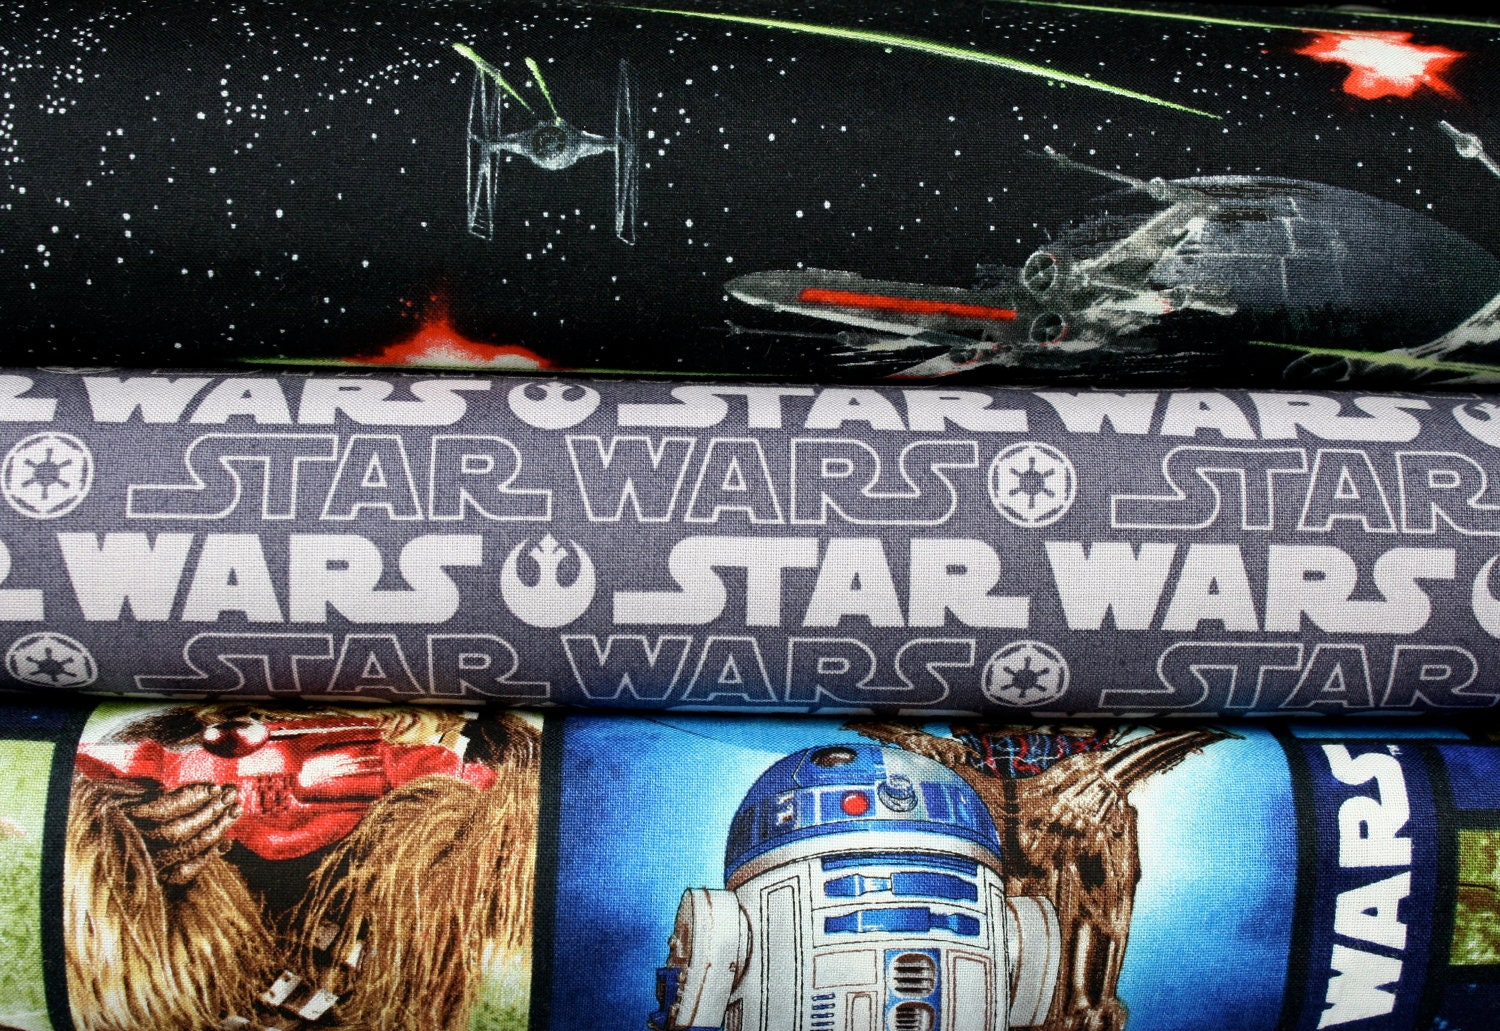 Star wars cotton fabric collection 1 yard by cottonblossomfarm for Star wars fabric